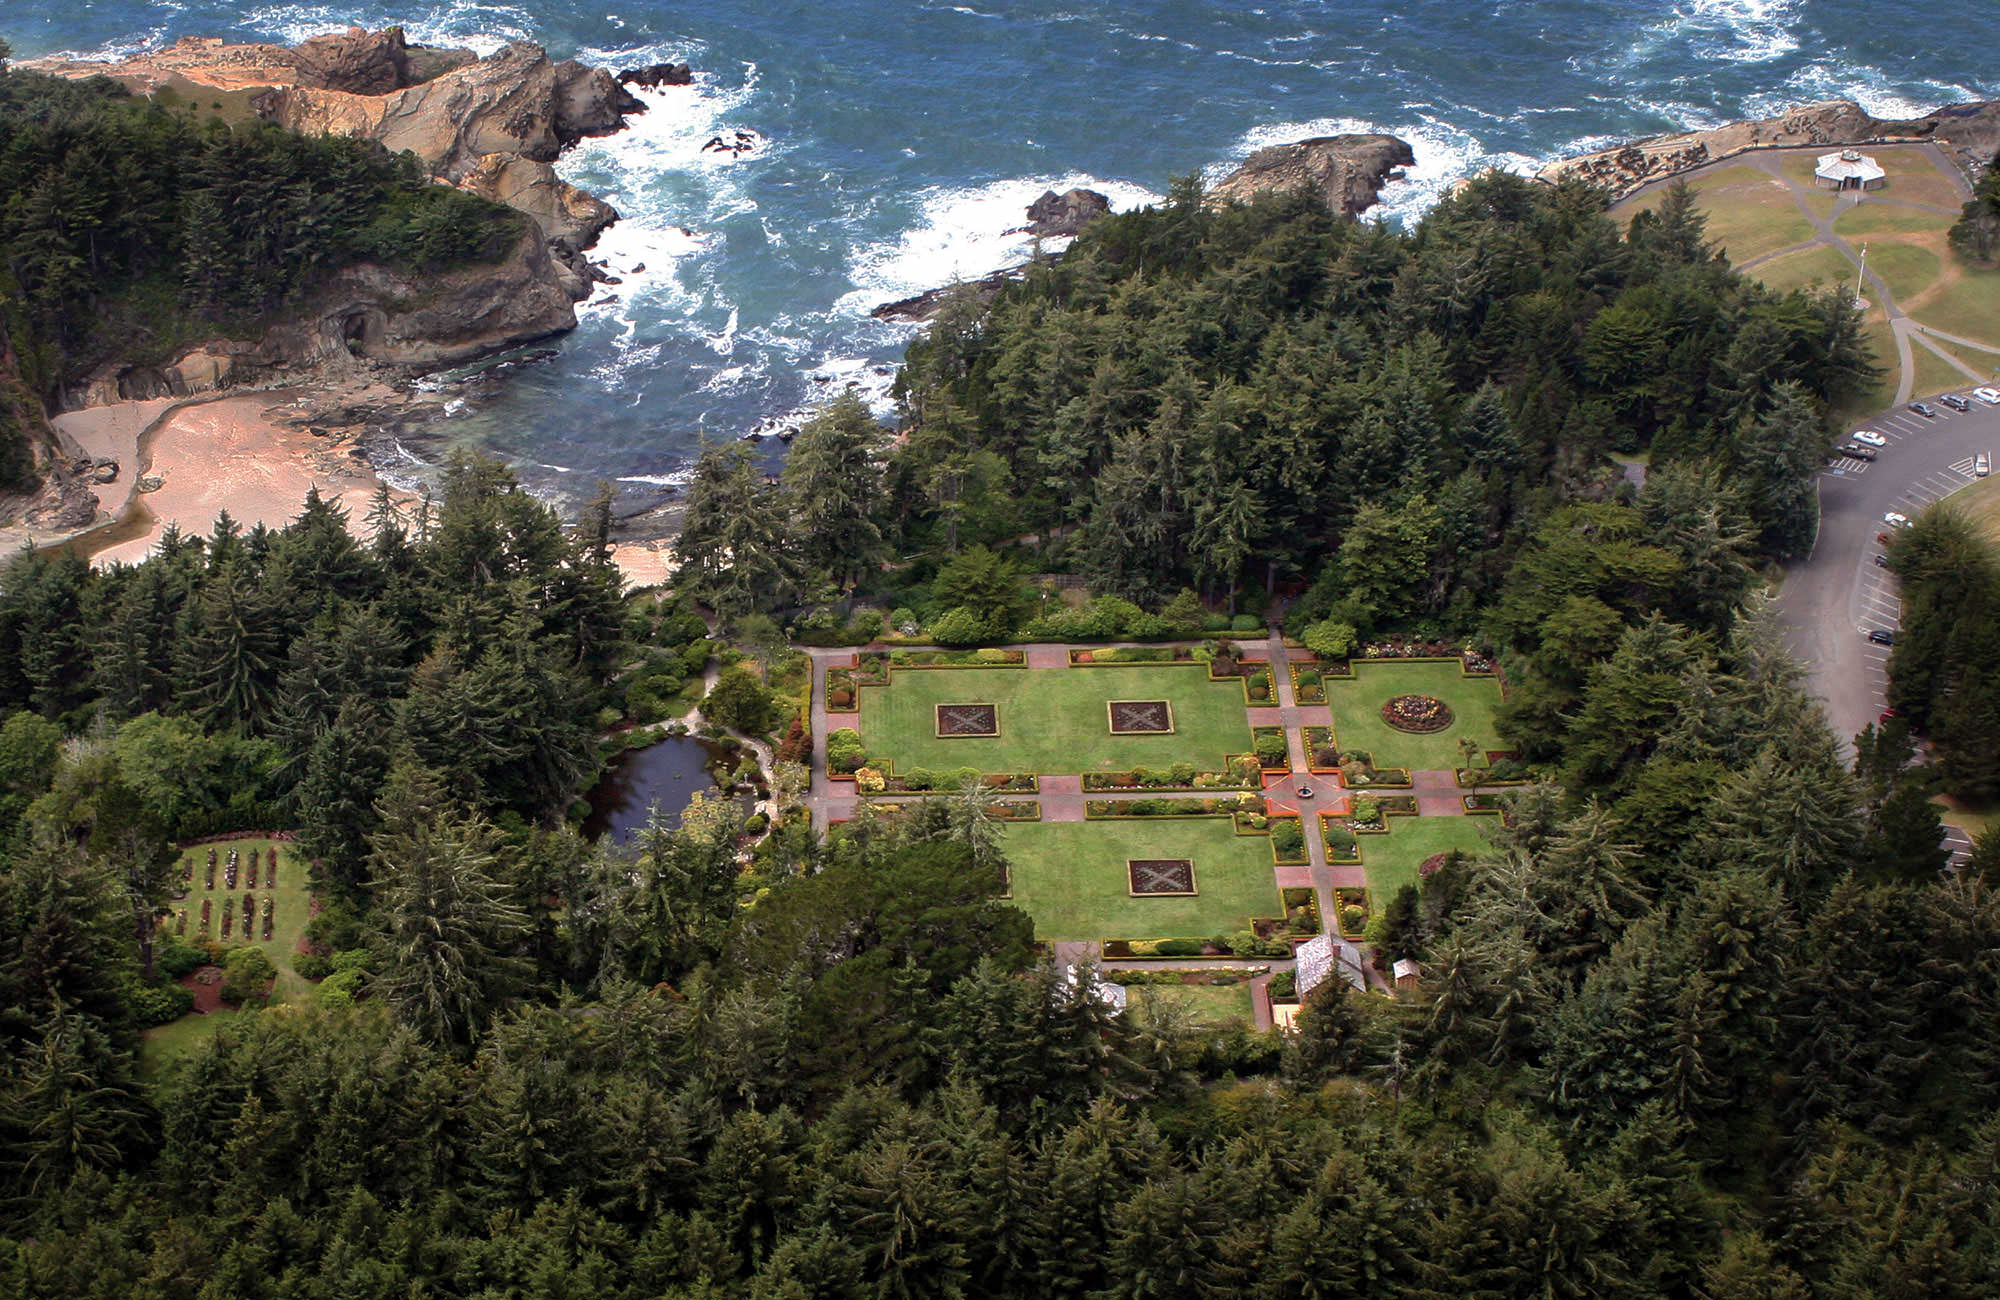 A bird's-eye view of Shore Acres State Park shows an impressive garden space on a cliff above the ocean.